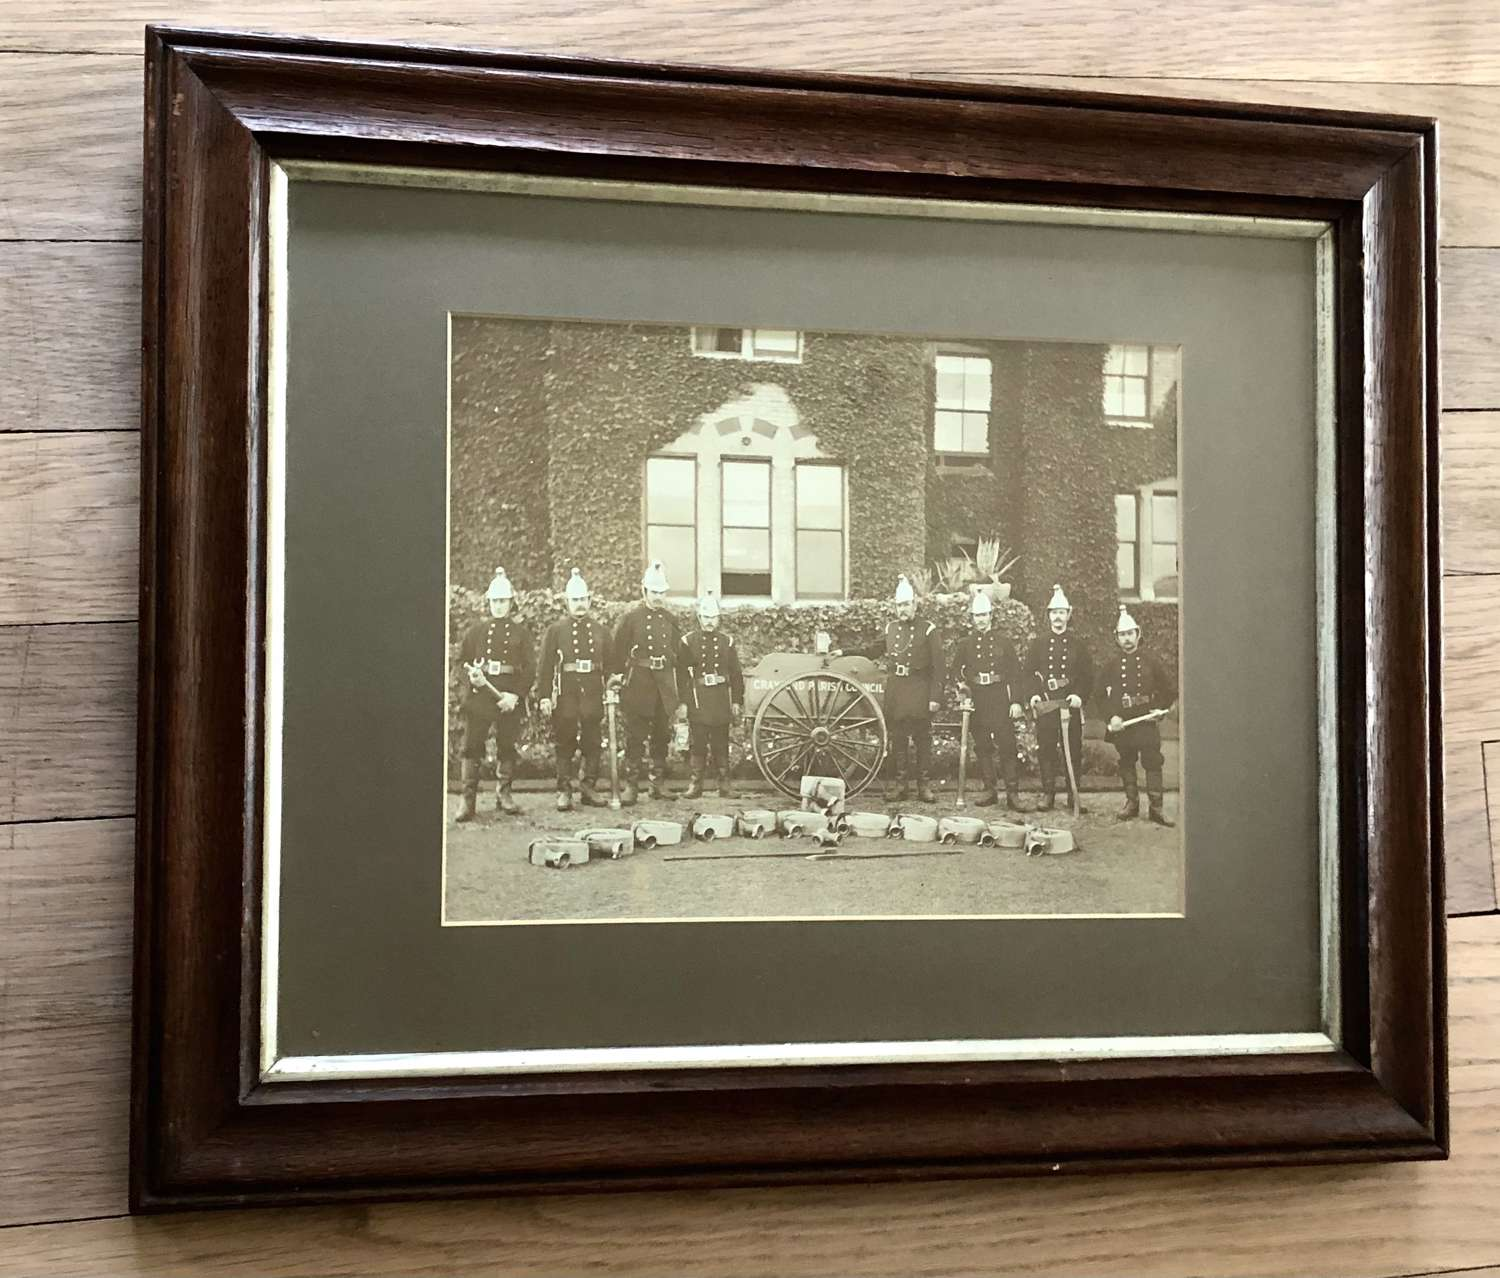 Original framed Firemen Photo c.1900